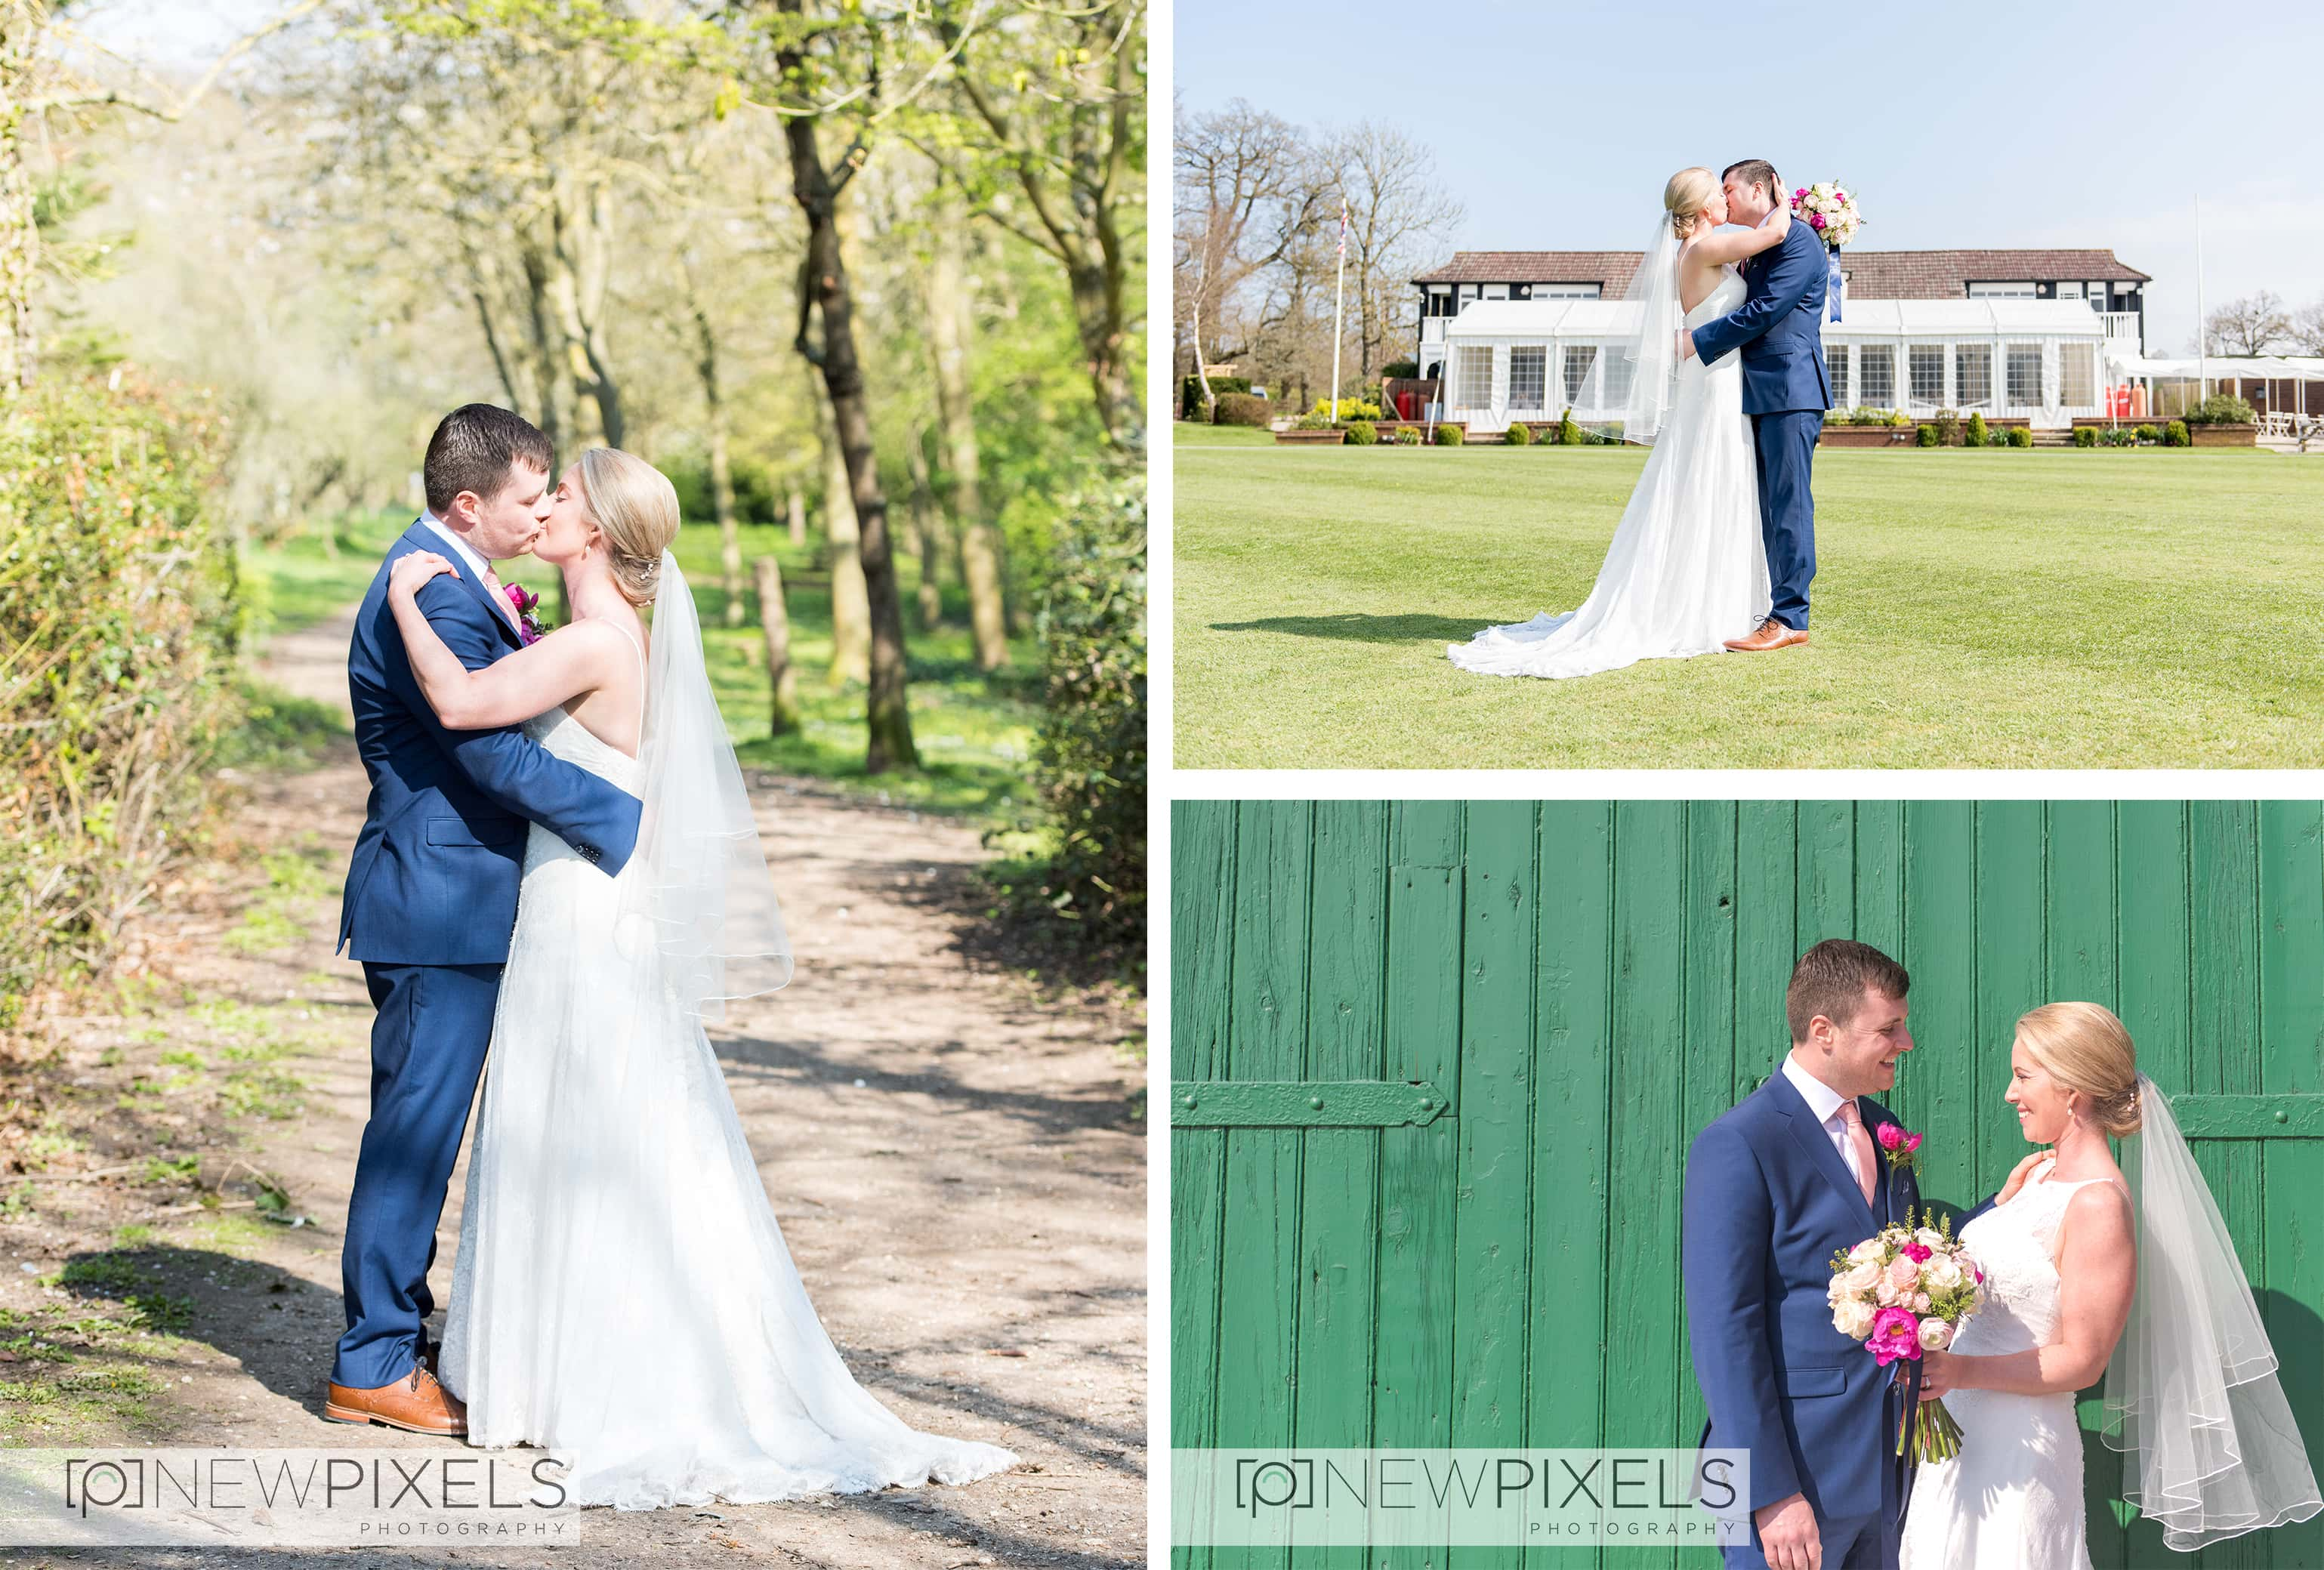 Last weekend we had the best time photographing Ciara & Chris' wedding at the London Shenley Club. We've photographed at this venue many times and it never fails to disappoint. The staff are wonderful and super helpful, the grounds are great for group shots and sunset photos and the wall gardens just up the road is the perfect location to get some intimate couple shots away from all your guests :)